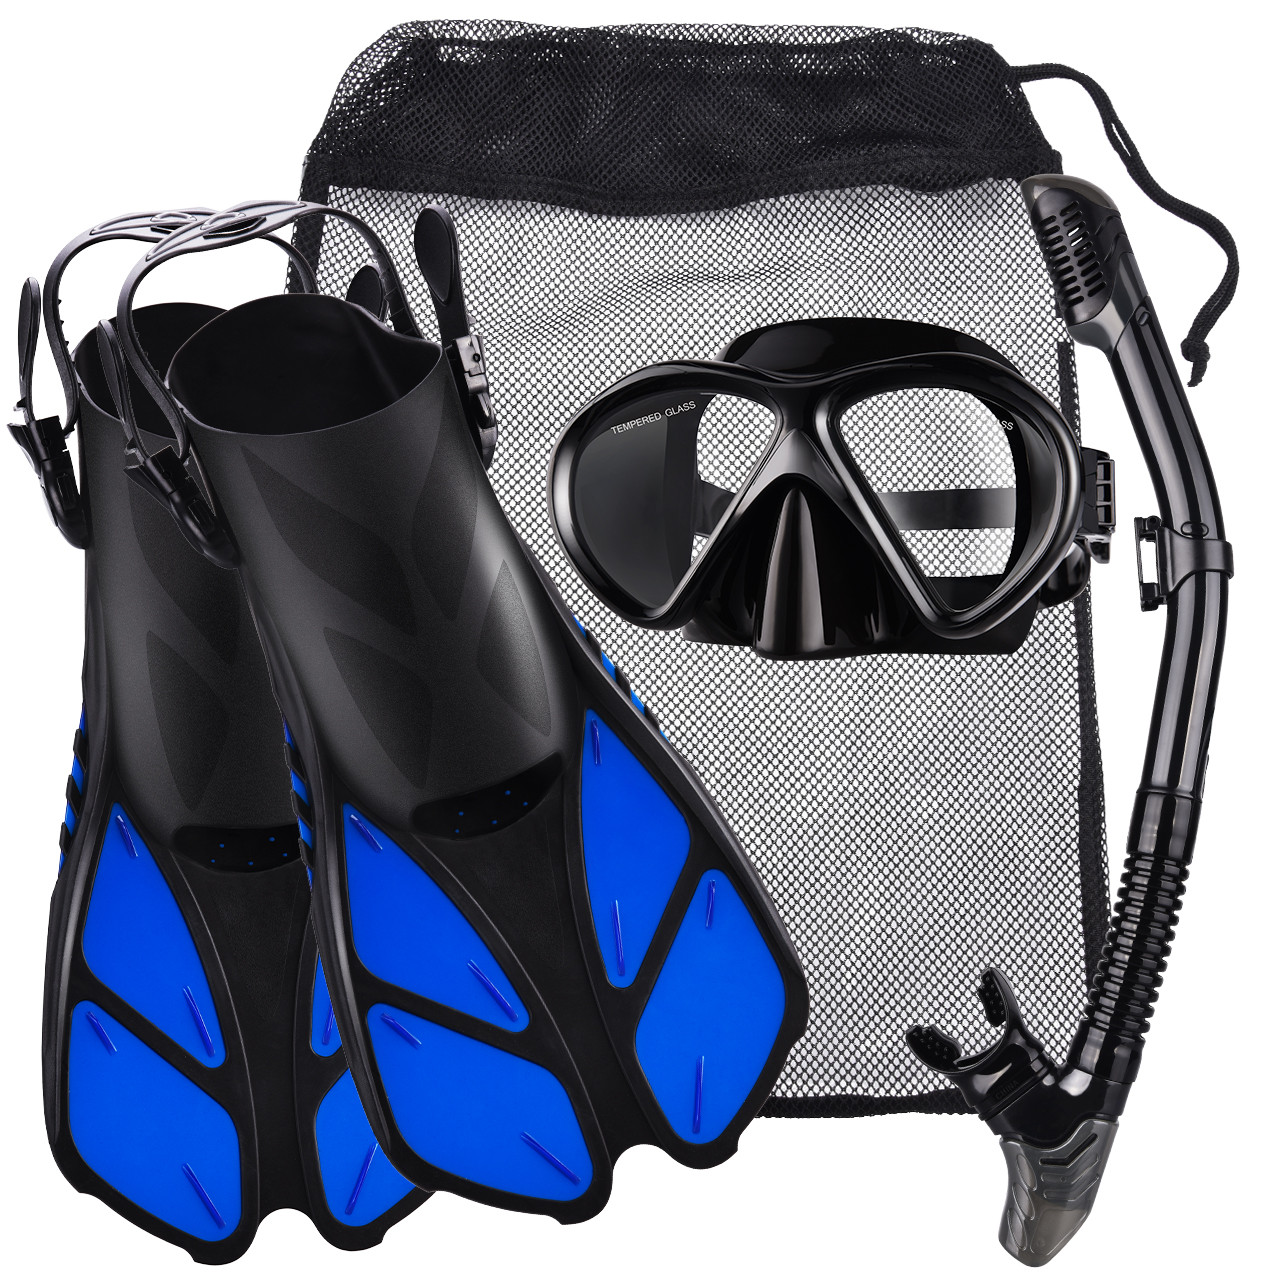 VicTsing Snorkel Set with Tempered Glass Diving Mask, Dry Snorkel and a Pair of Adjustable Trek Fins, a Mesh Bag Included, Size S (Fits for Size S and Size M) – Black